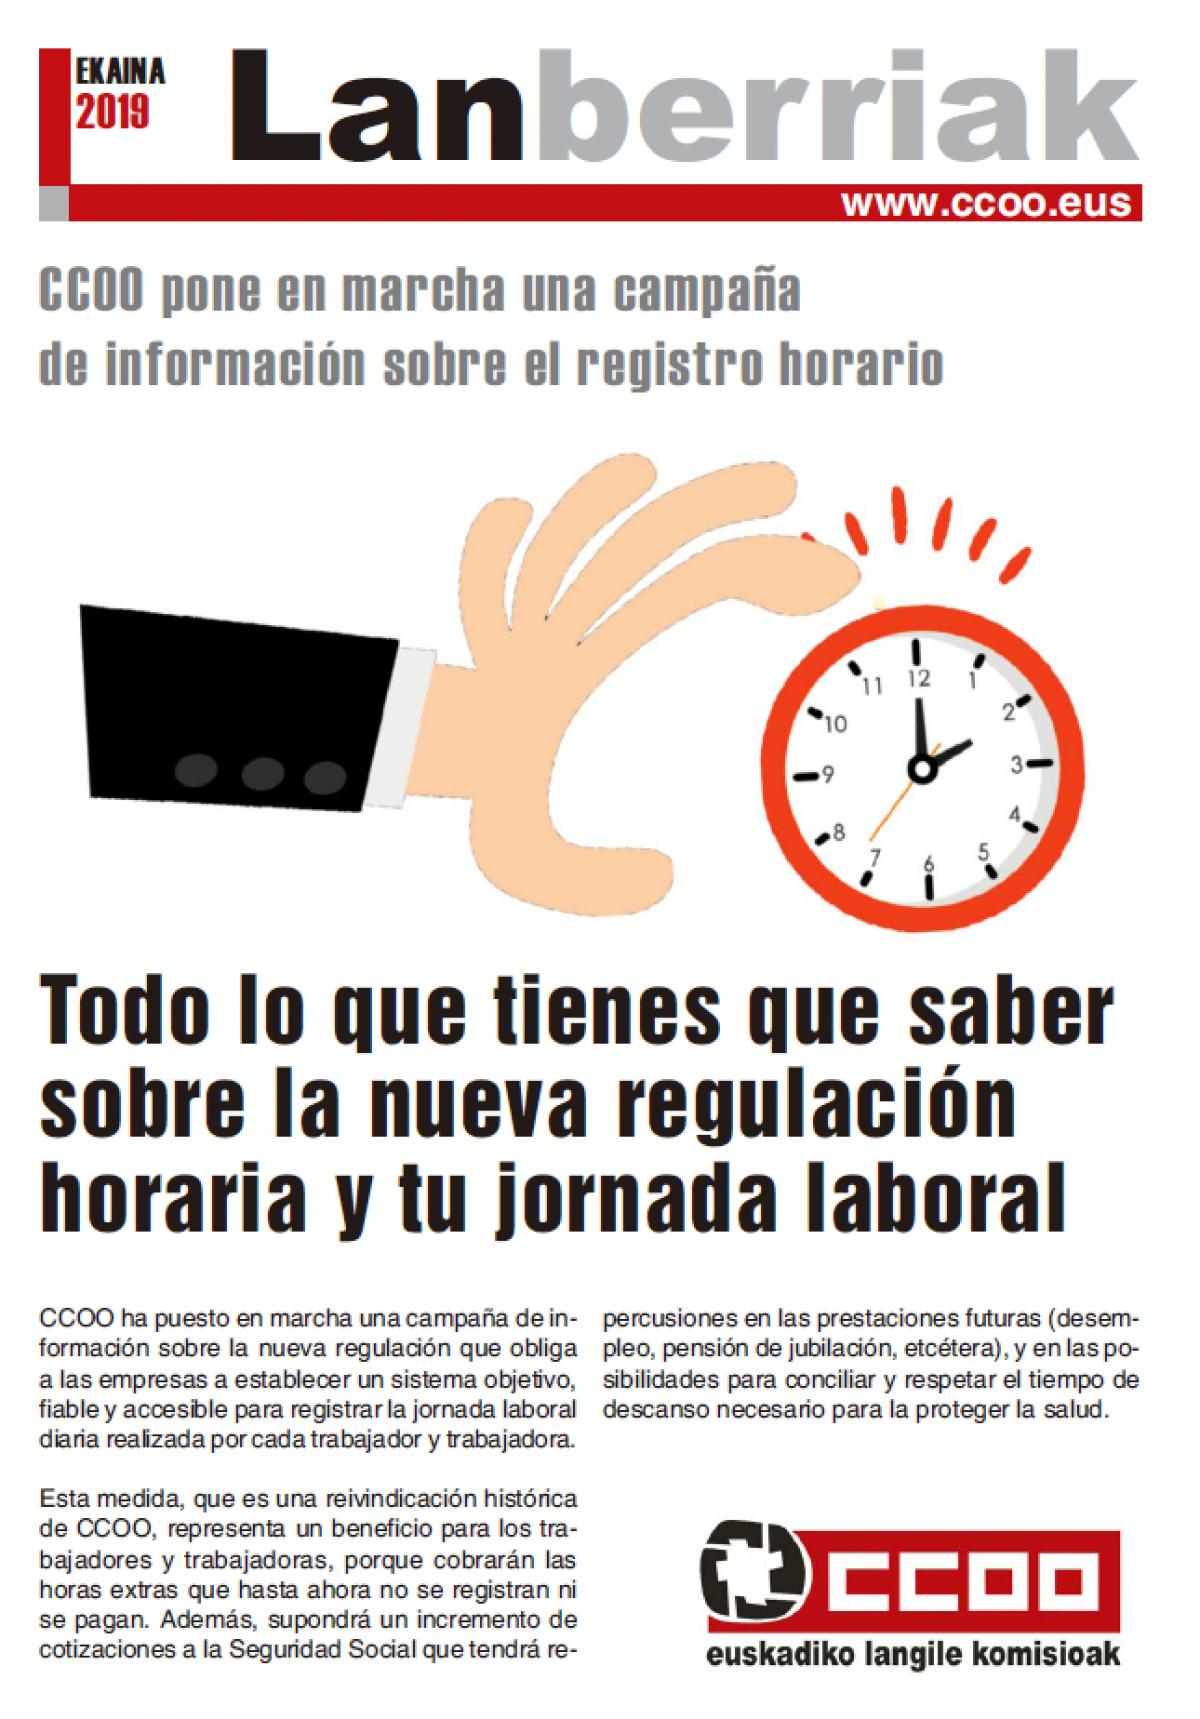 Lanberriak registro horario